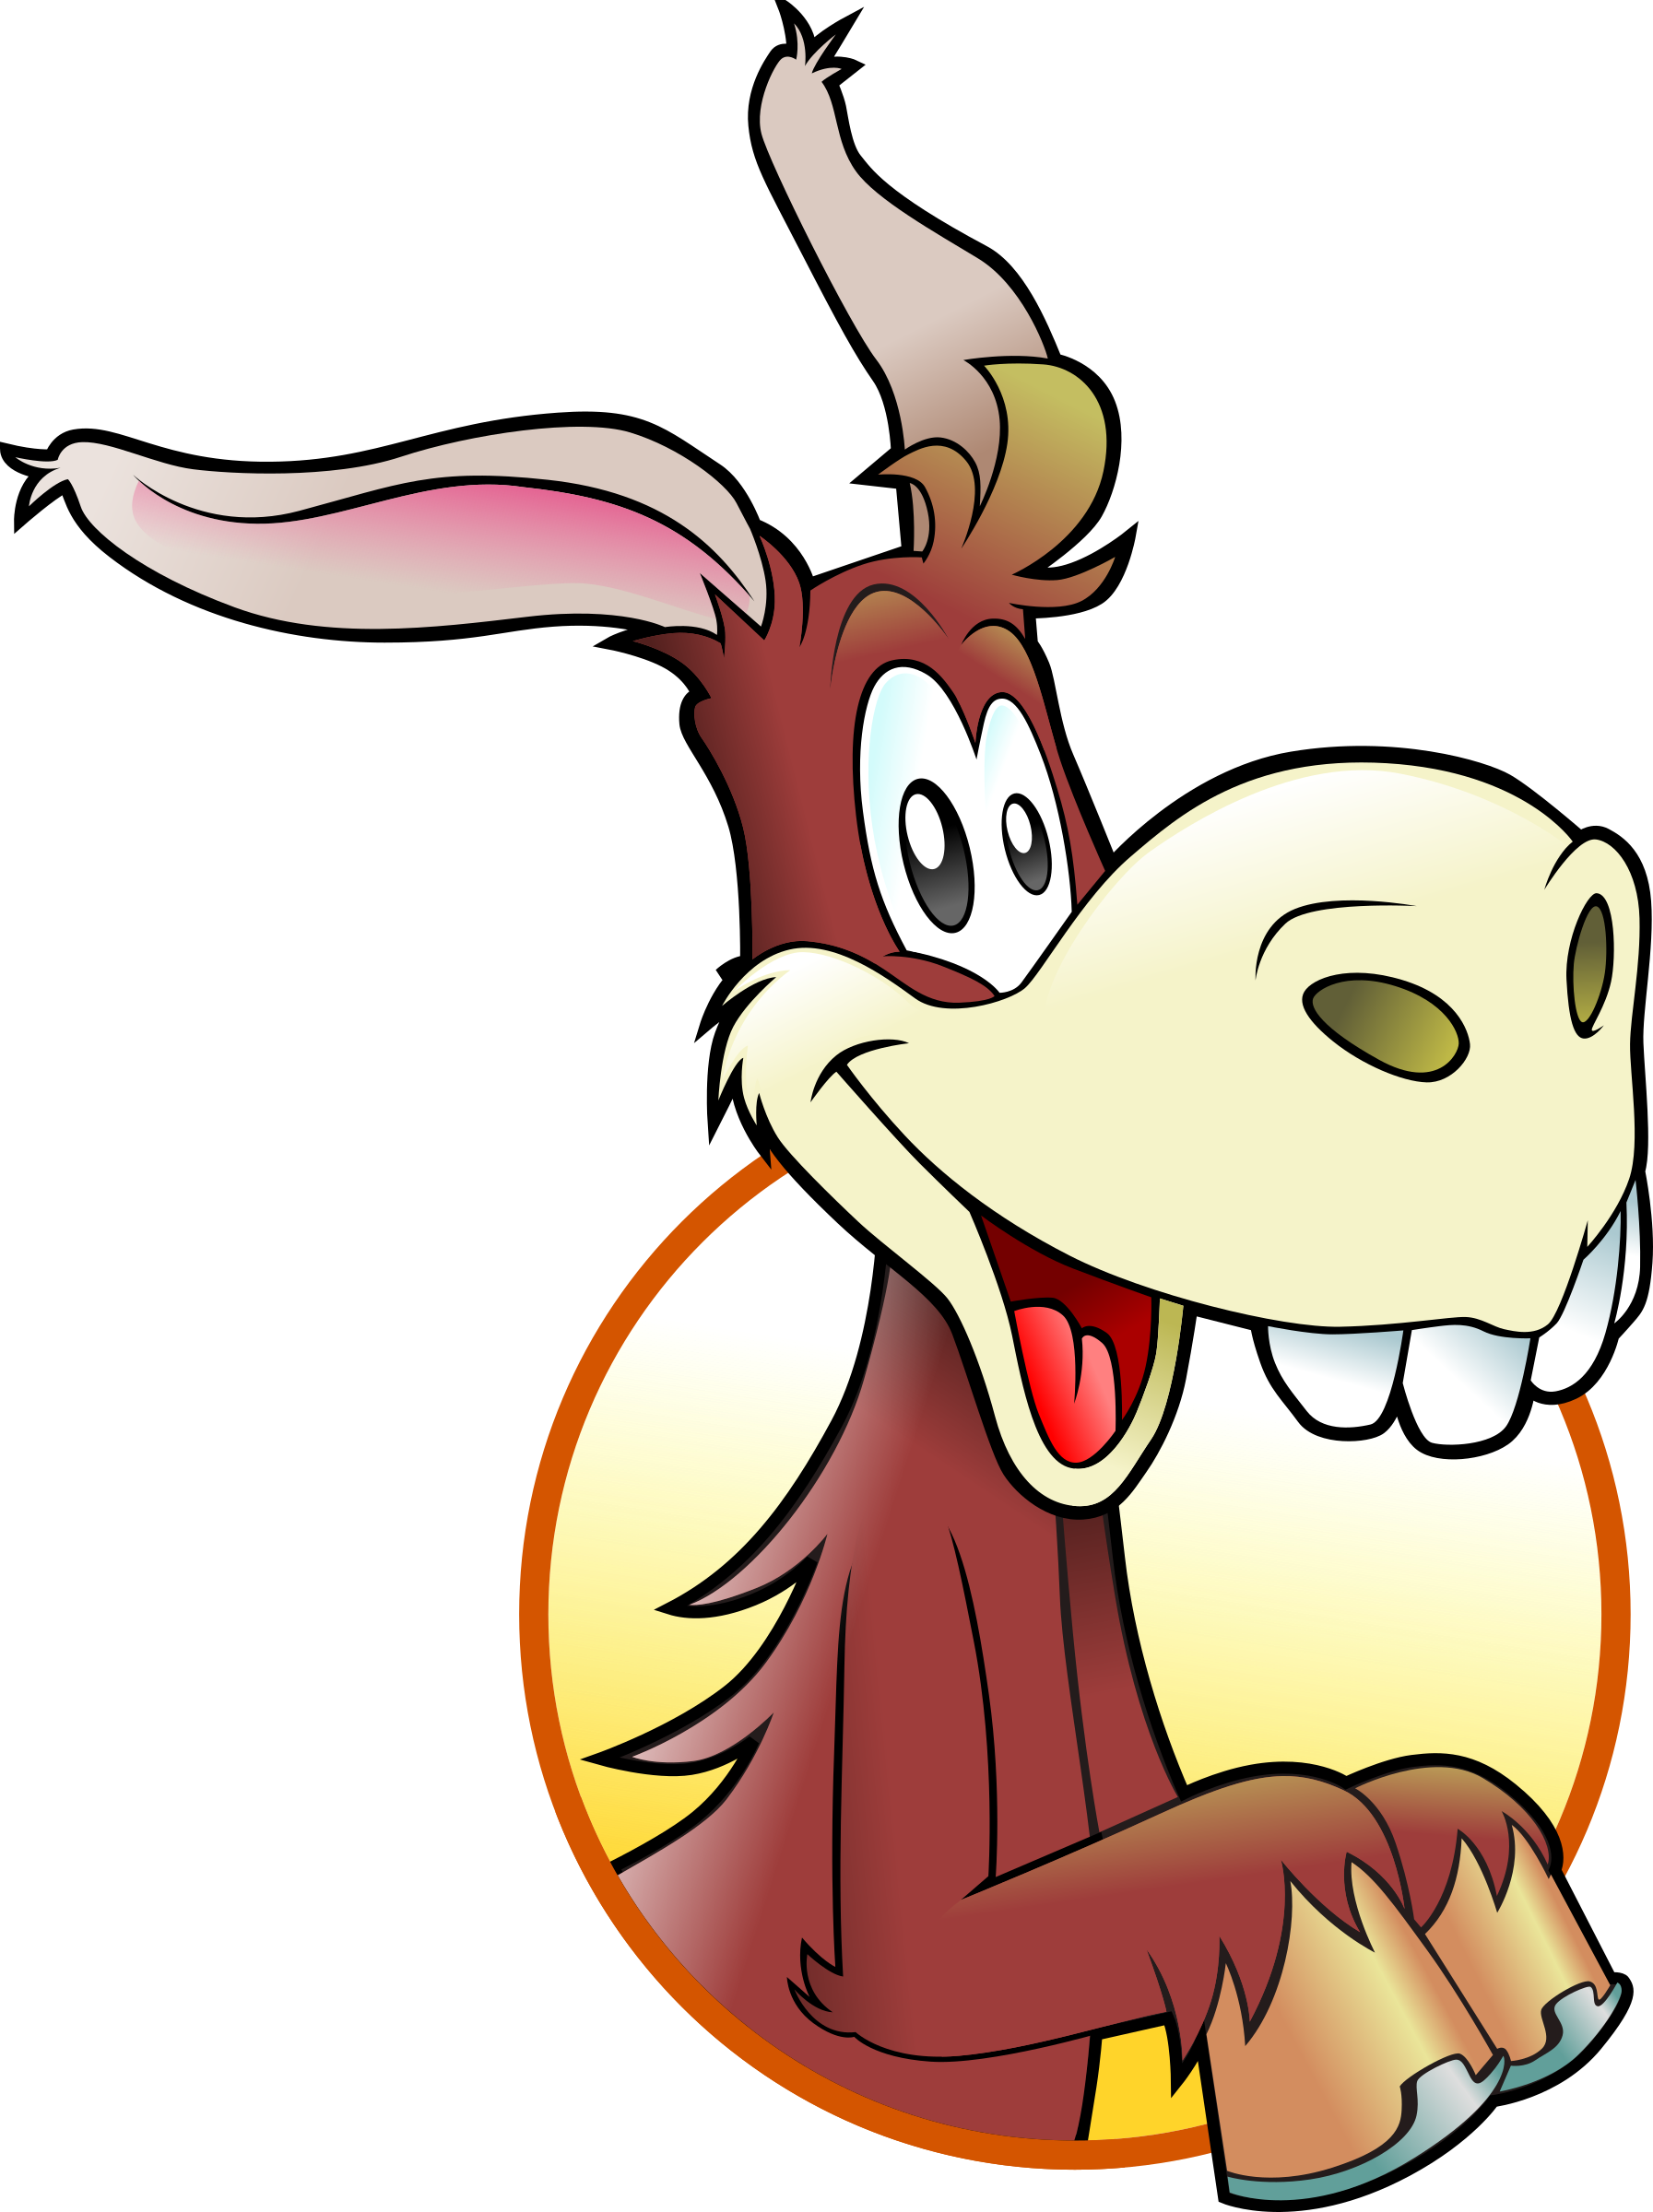 Happy Donkey by Schade